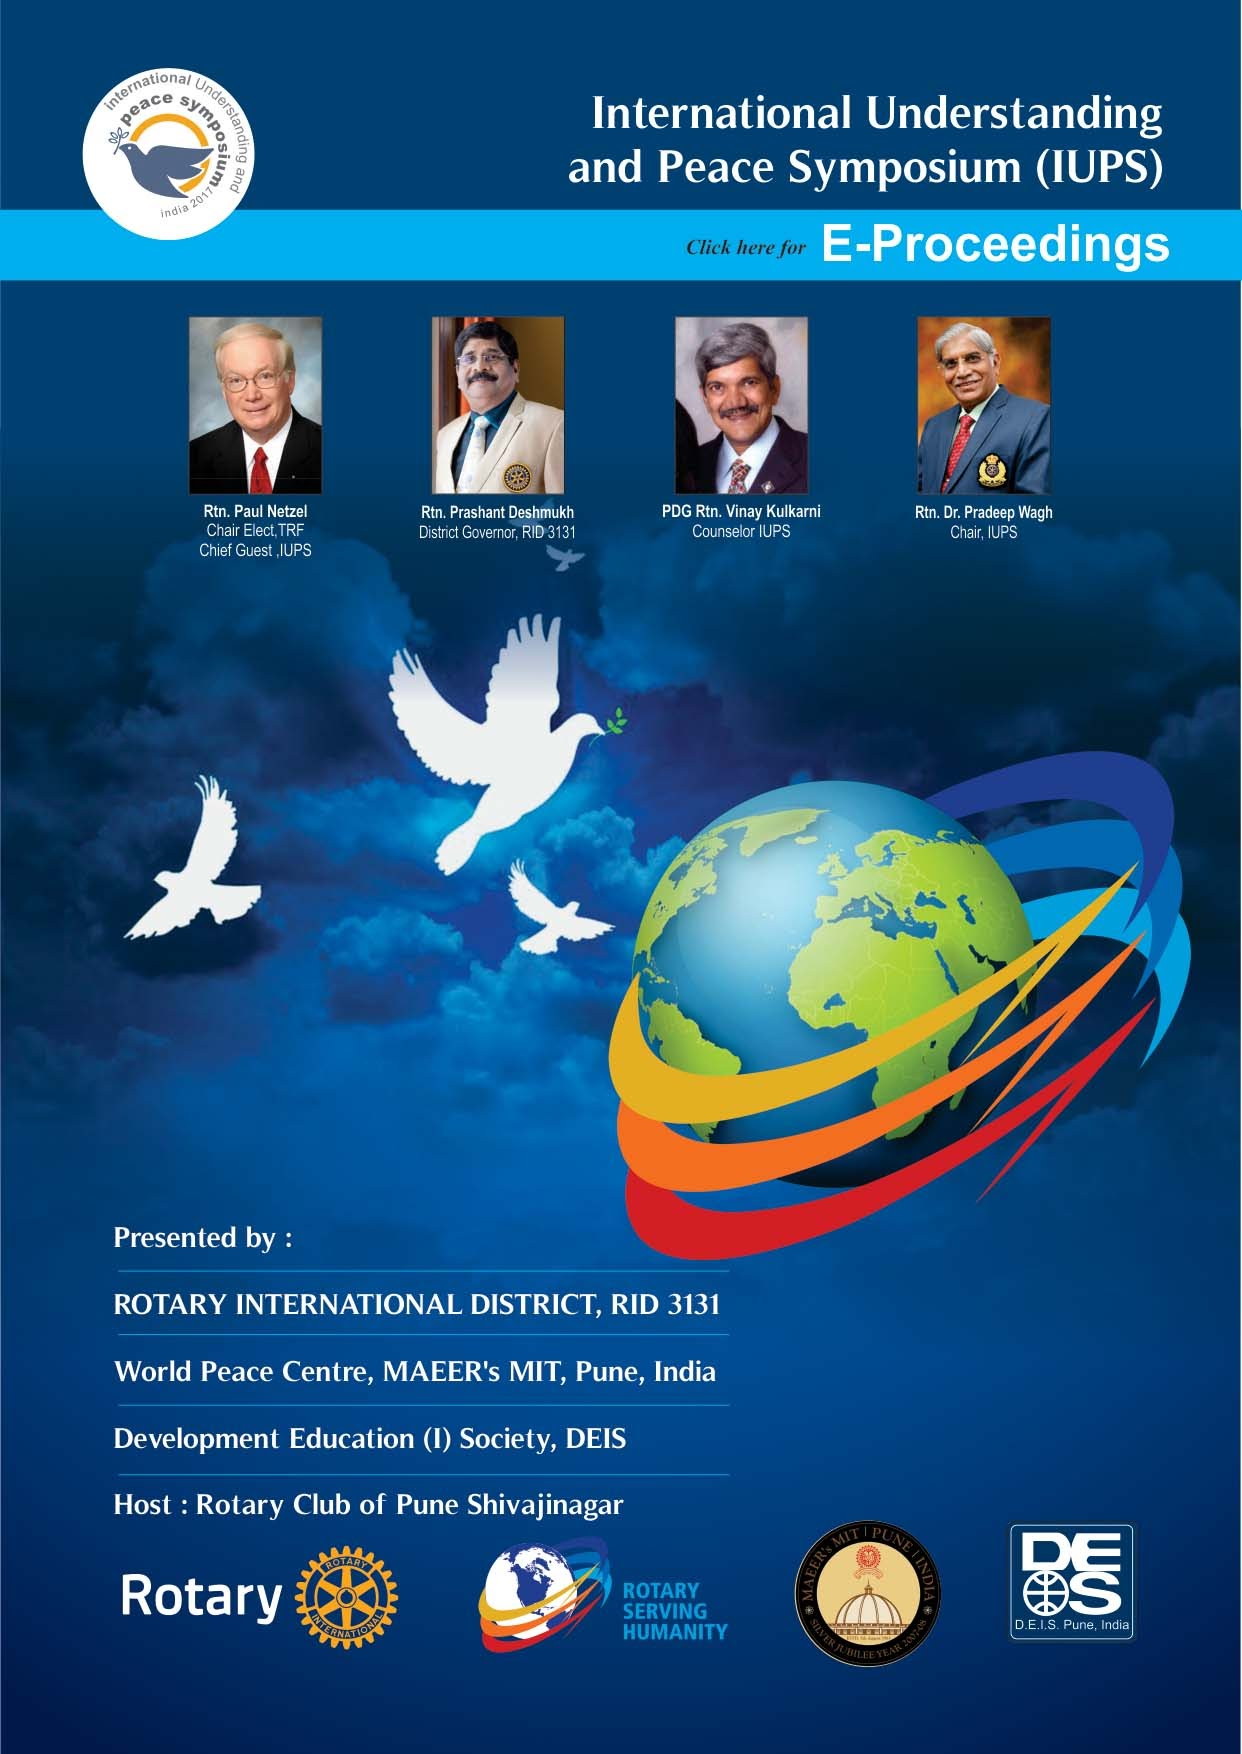 http://www.rotarypeace.in/iups-e-proceeding